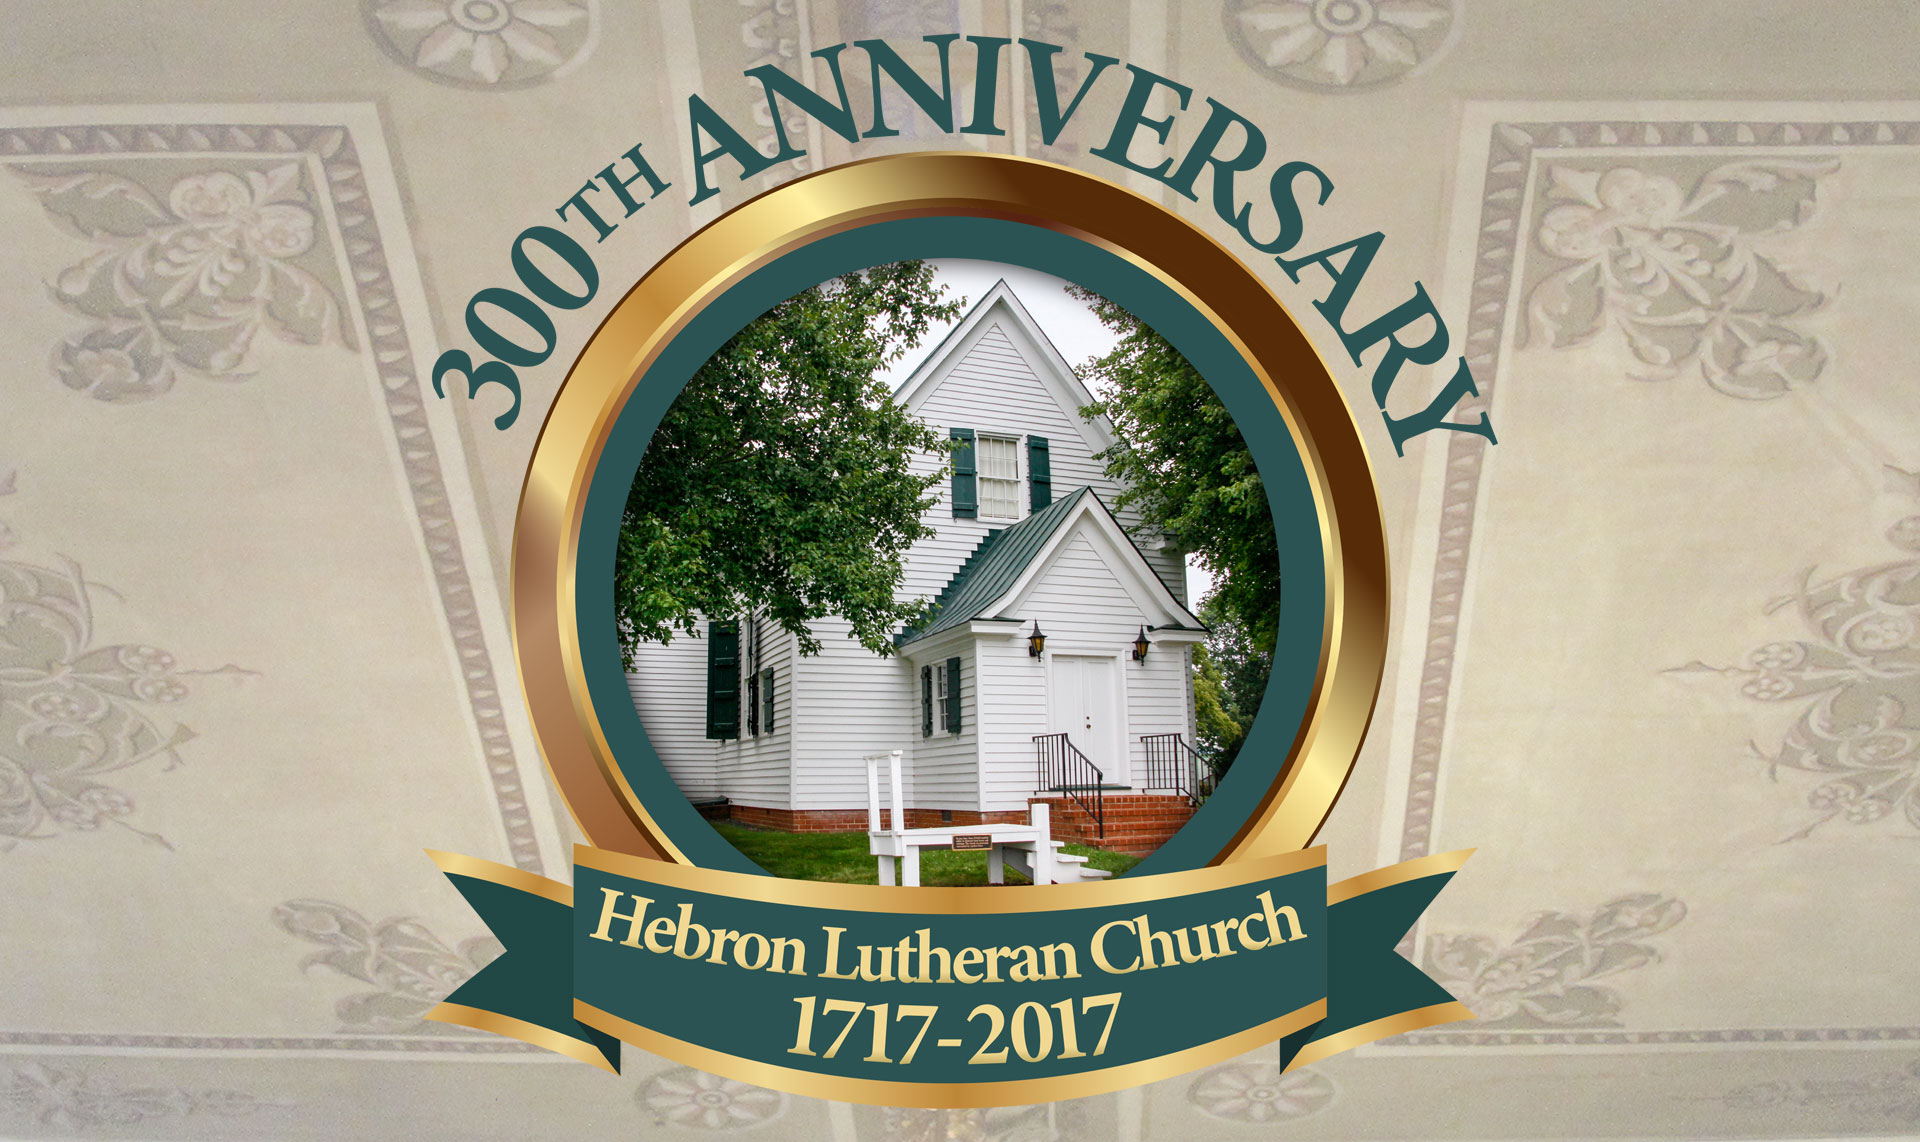 300th Anniversary of Hebron Lutheran Church in Madison, Virginia